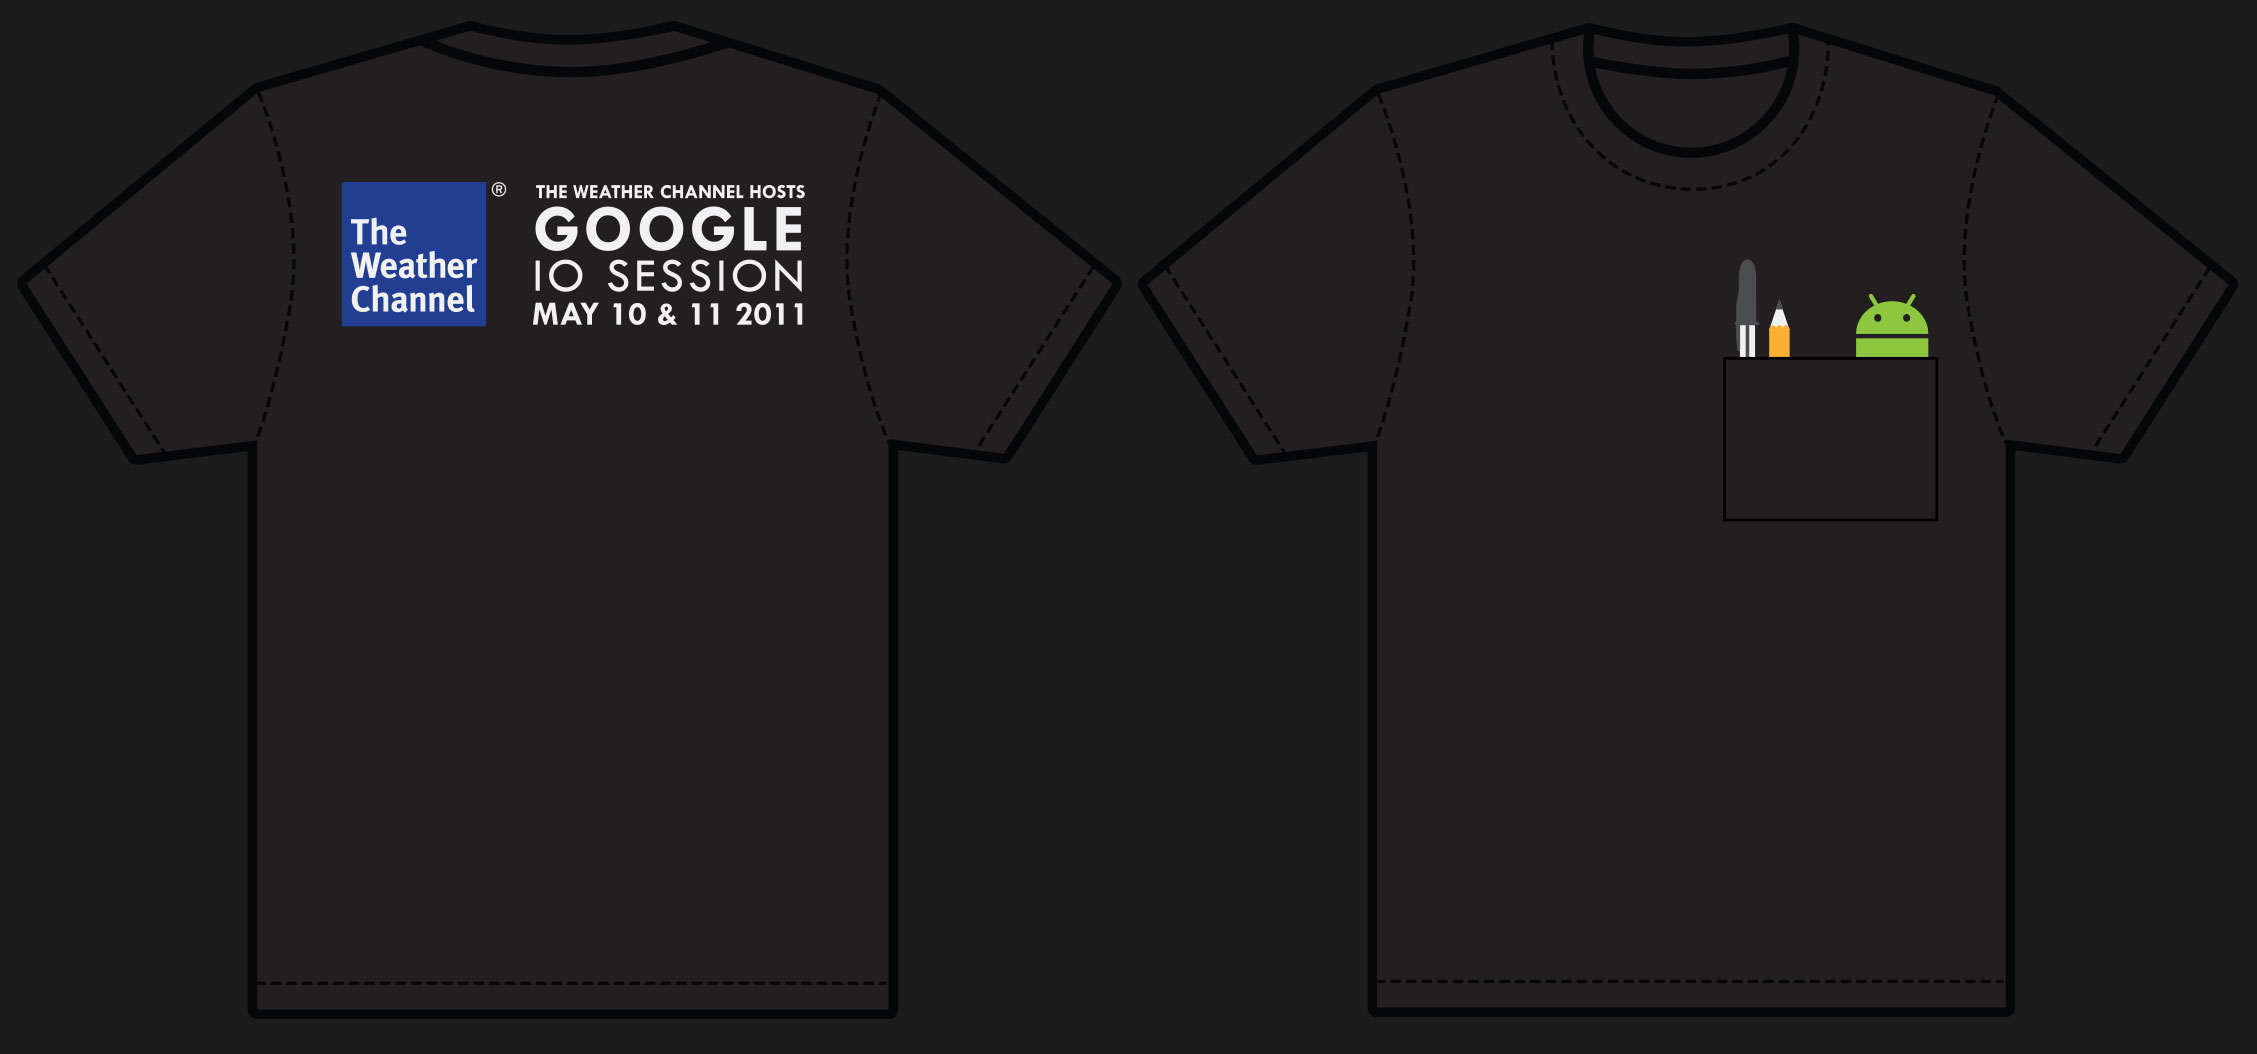 T-Shirt design made for the Google IO Session in 2011